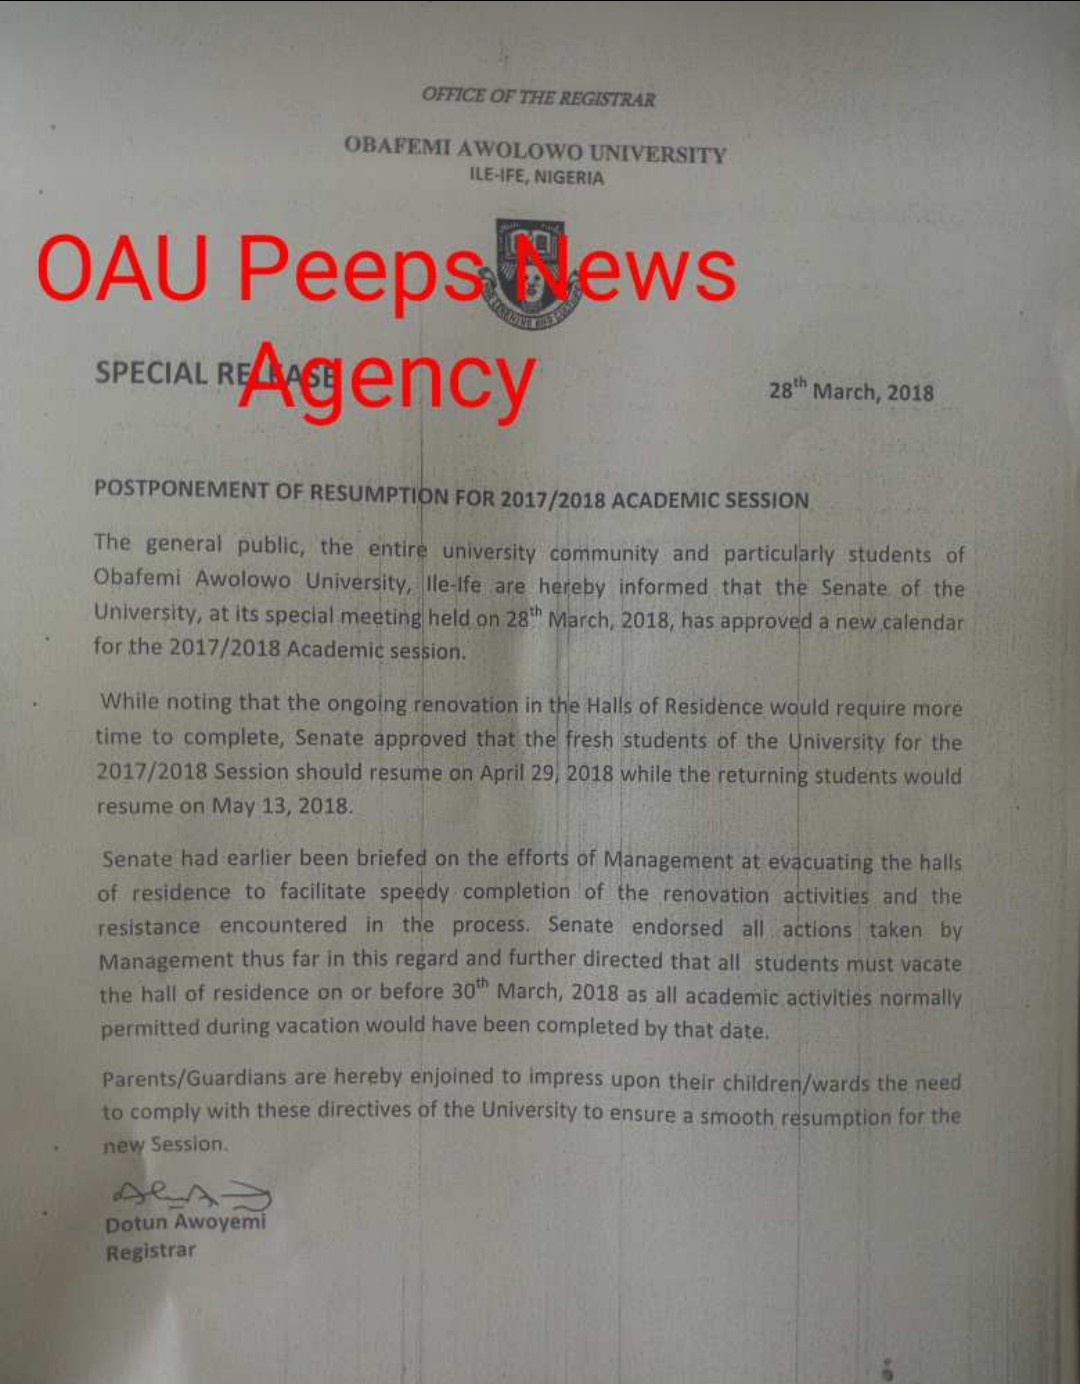 oau management issues fresh directives to students still on campus